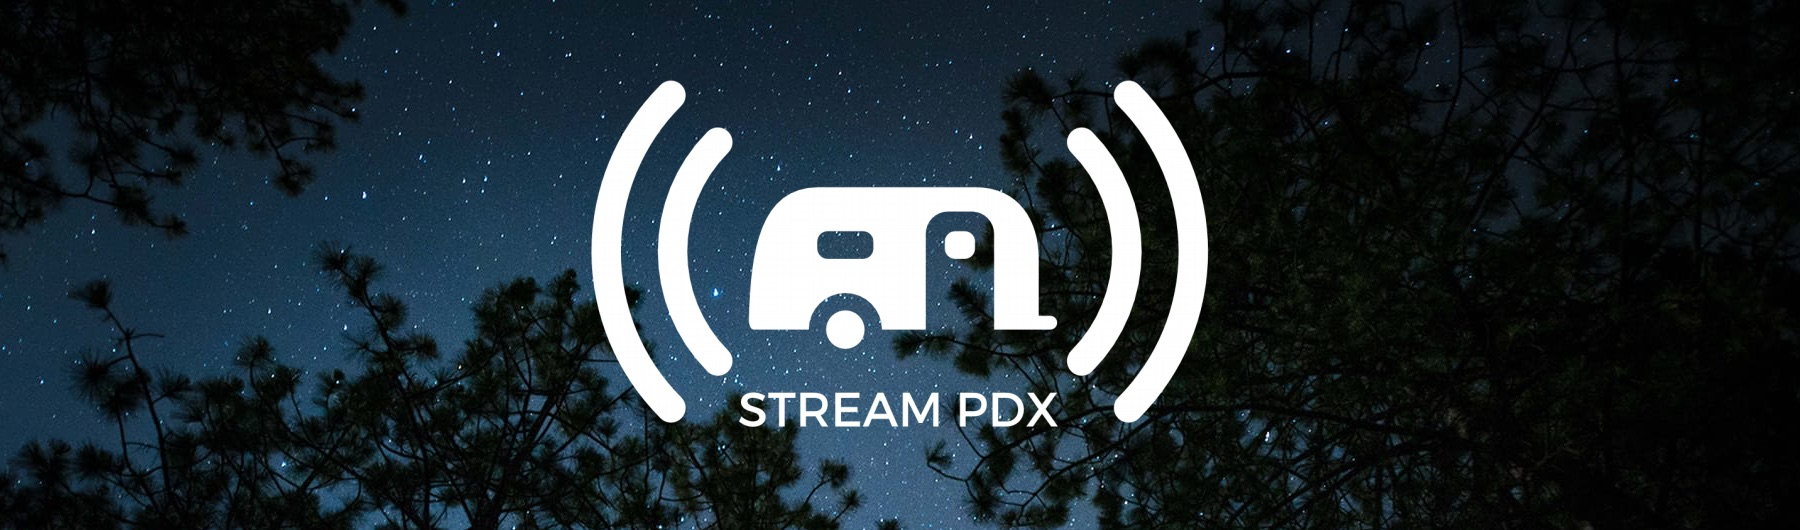 Monthly Stream PDX Meetup - November 3 at 6:00 PM